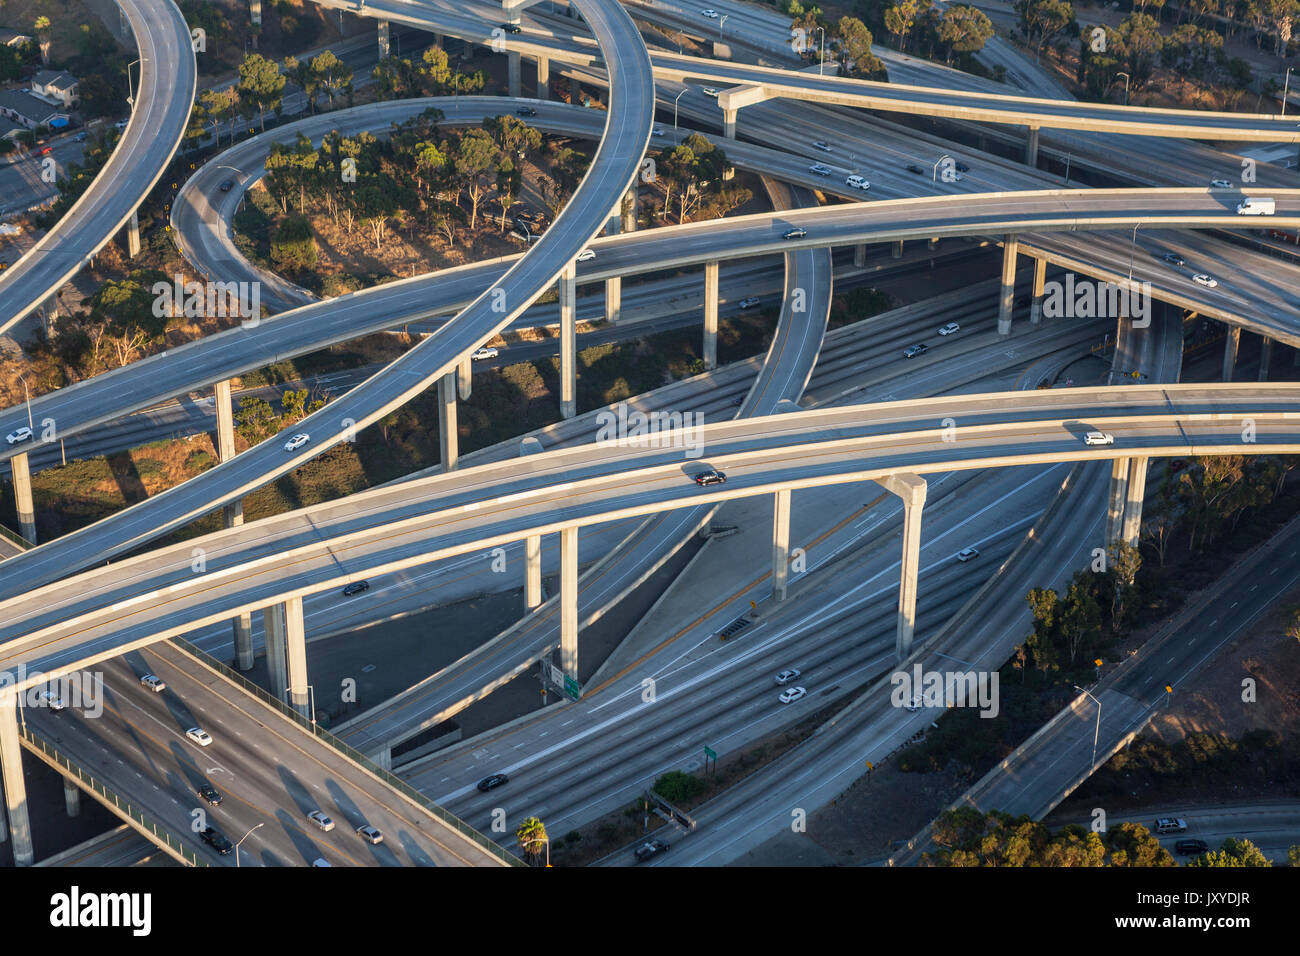 Aerial of Los Angeles 110 and 105 freeway interchange in Southern California. - Stock Image